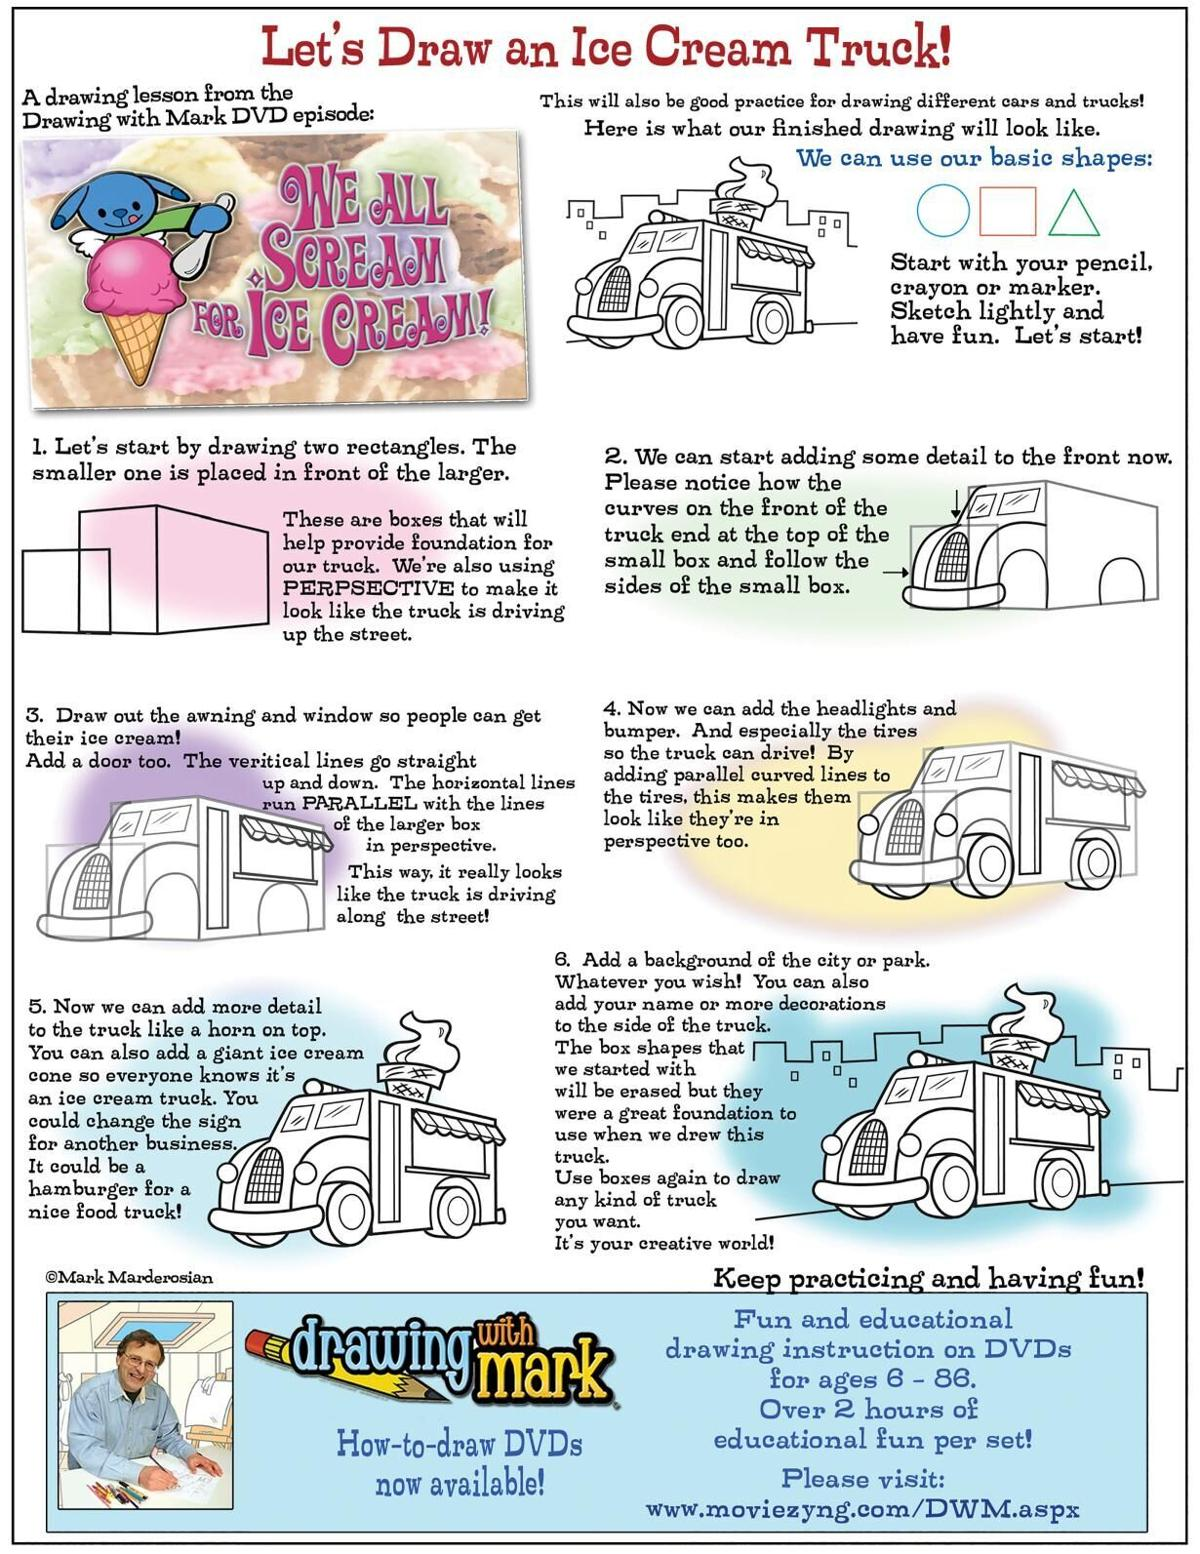 Draw an ice cream truck with Mark